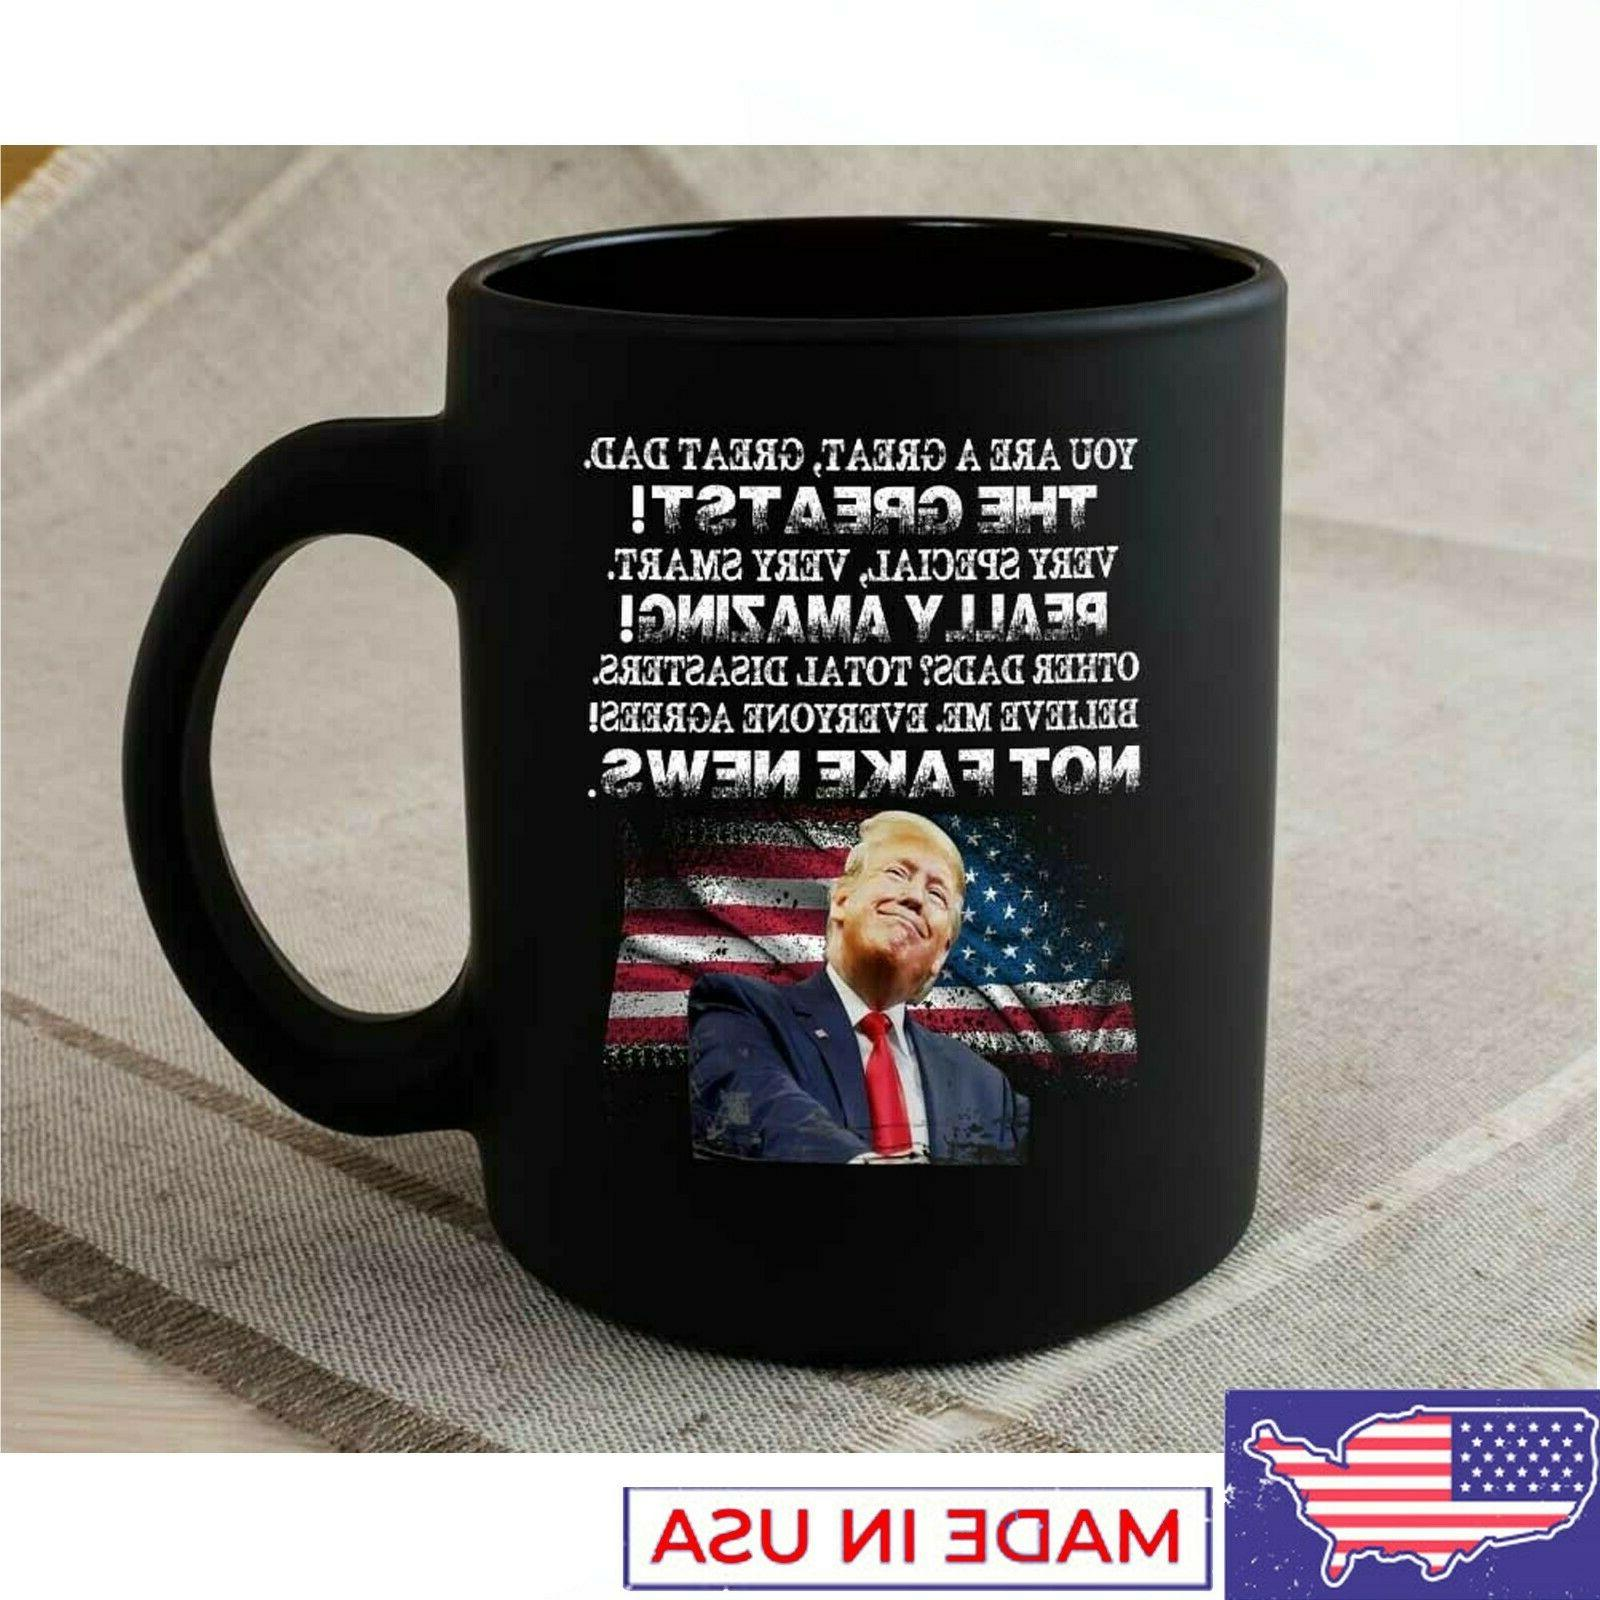 Funny Donald Trump Father's Day Coffee Mug from Daughter or